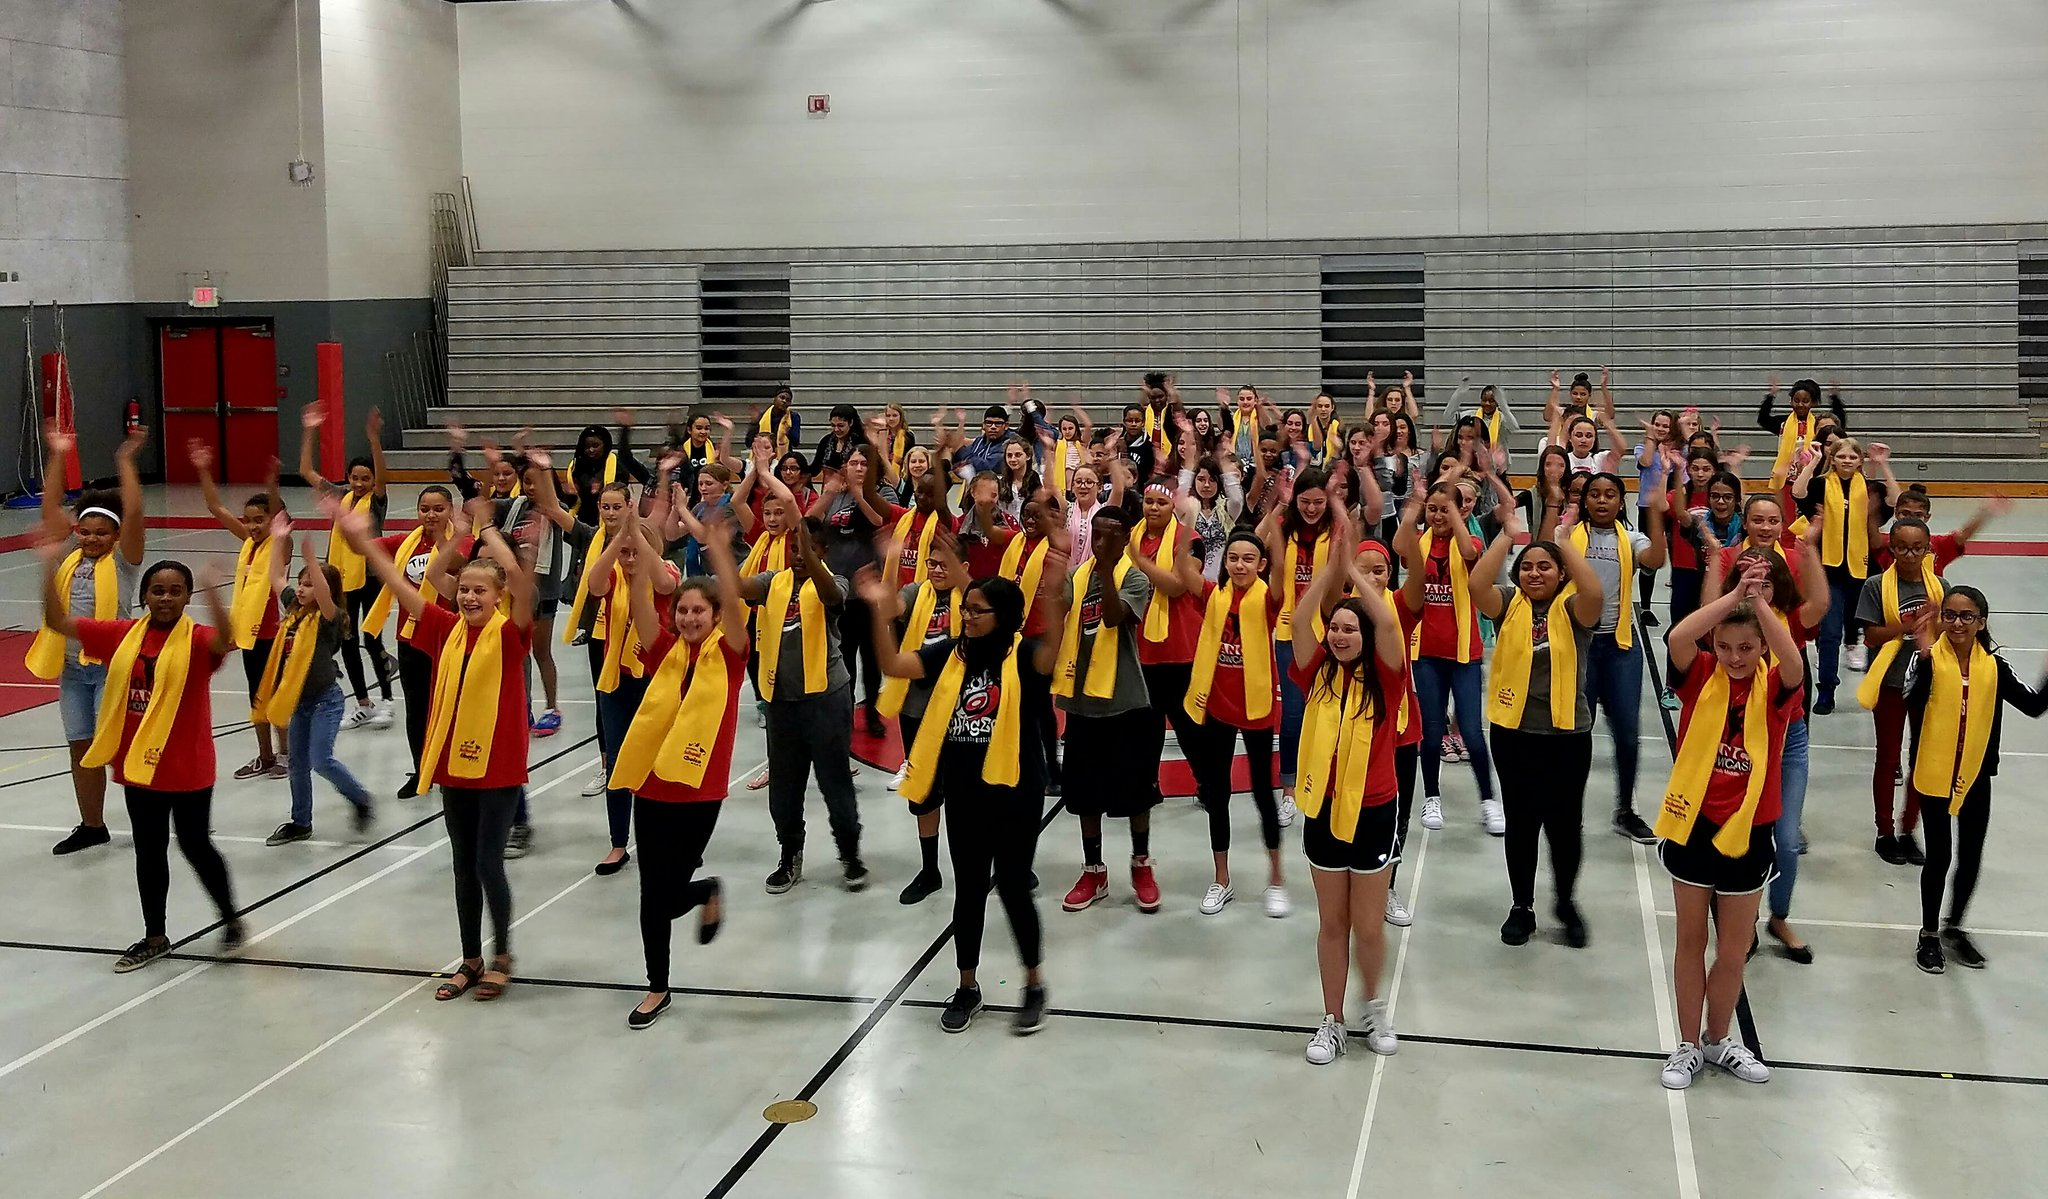 SSMS leaders of dance perform for National School Choice Week! #schoolchoice  @schoolchoicewk  @SCPSInfo  @SCMiddleSchools https://t.co/BwRIvZlQDq